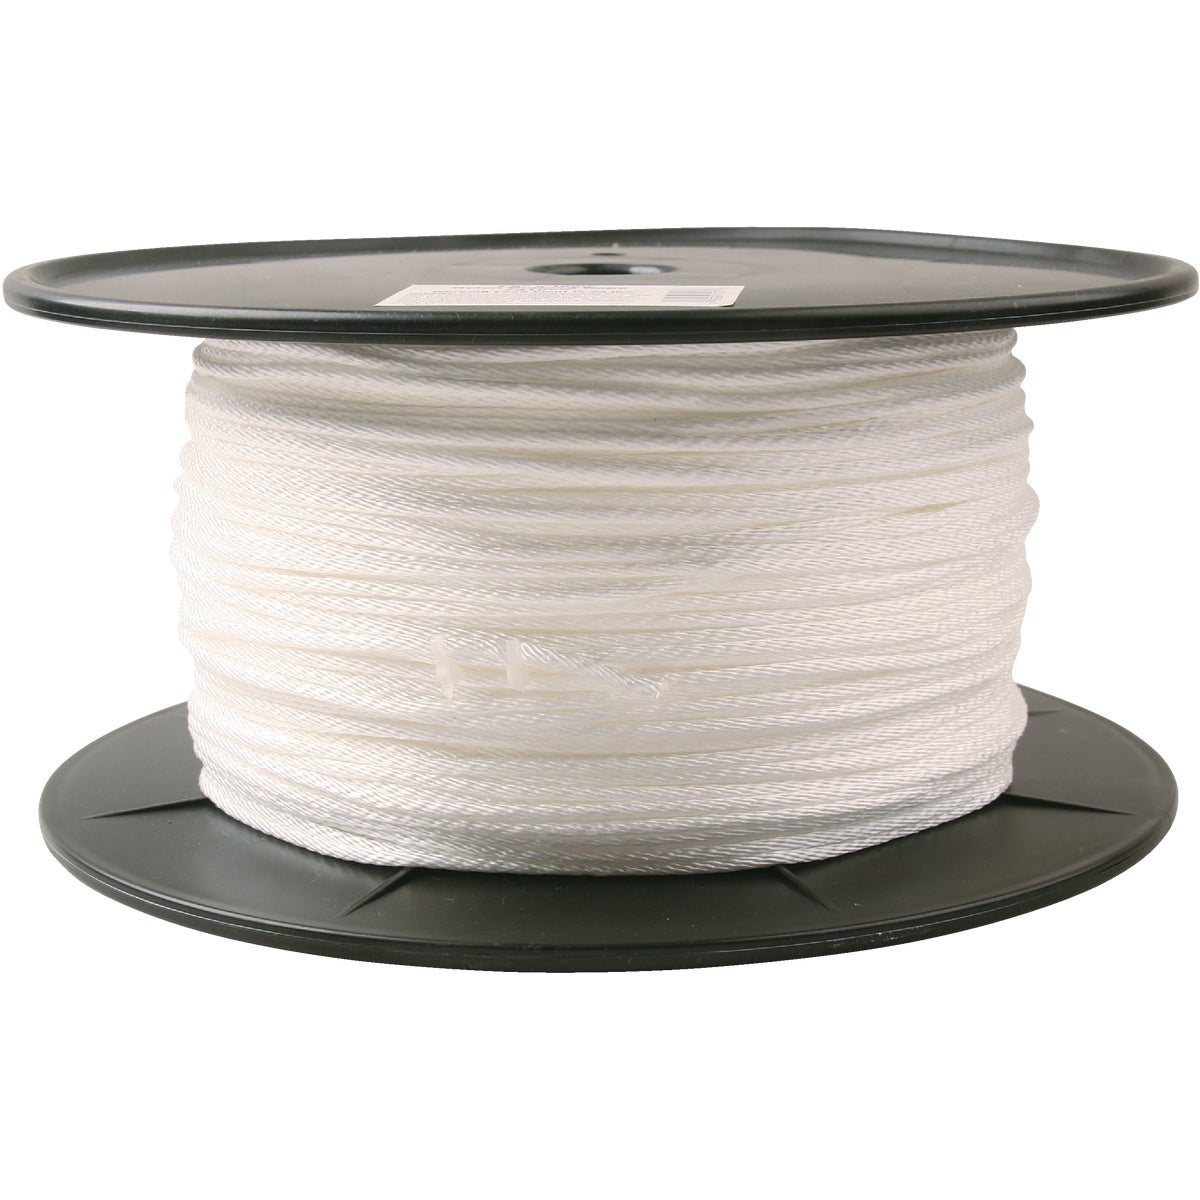 "1/8""X600' NYL BRAID ROPE"